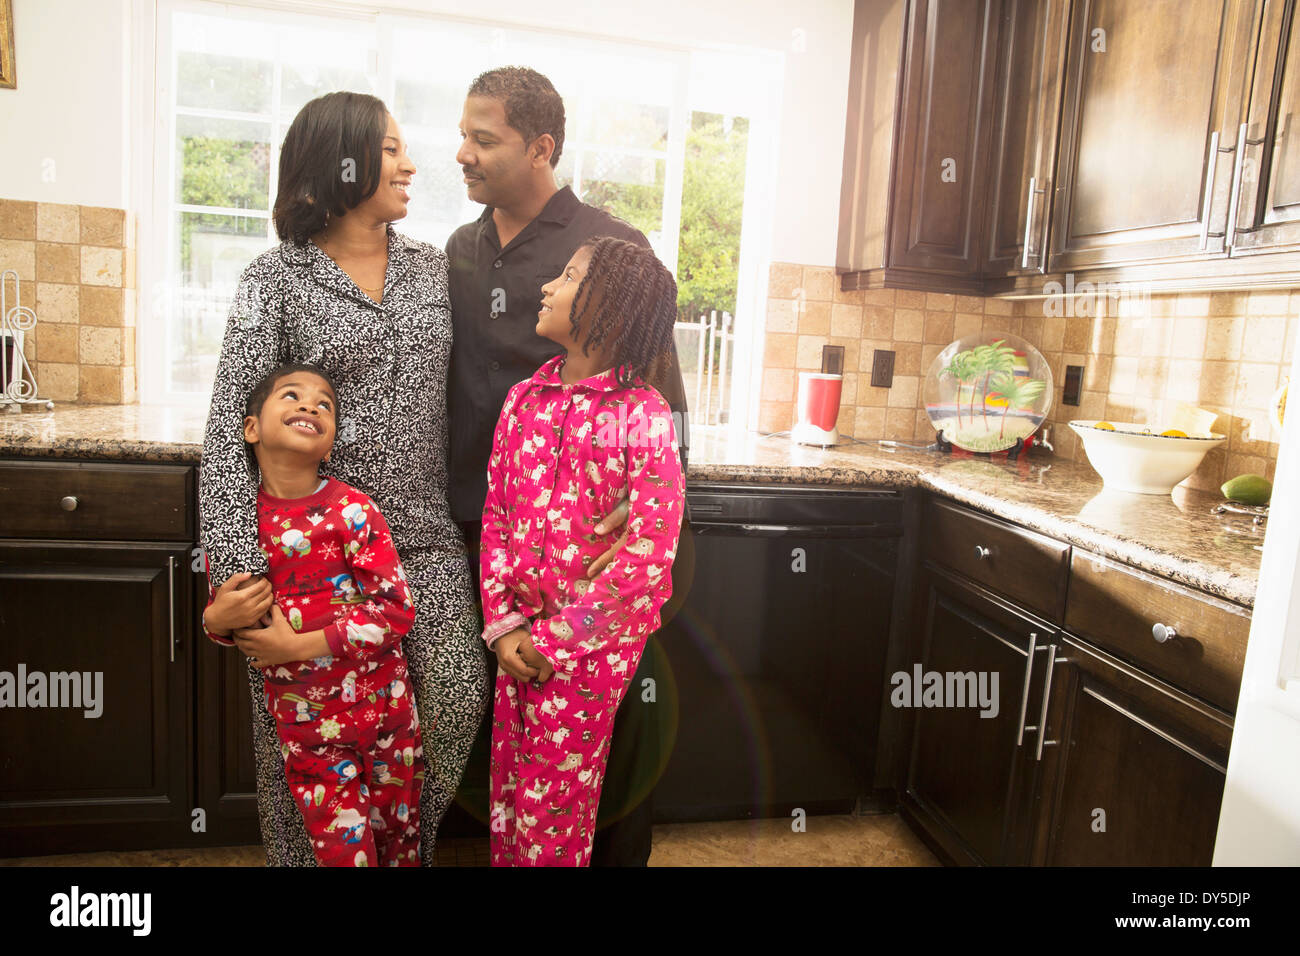 Mid adult couple with son and daughter in kitchen - Stock Image